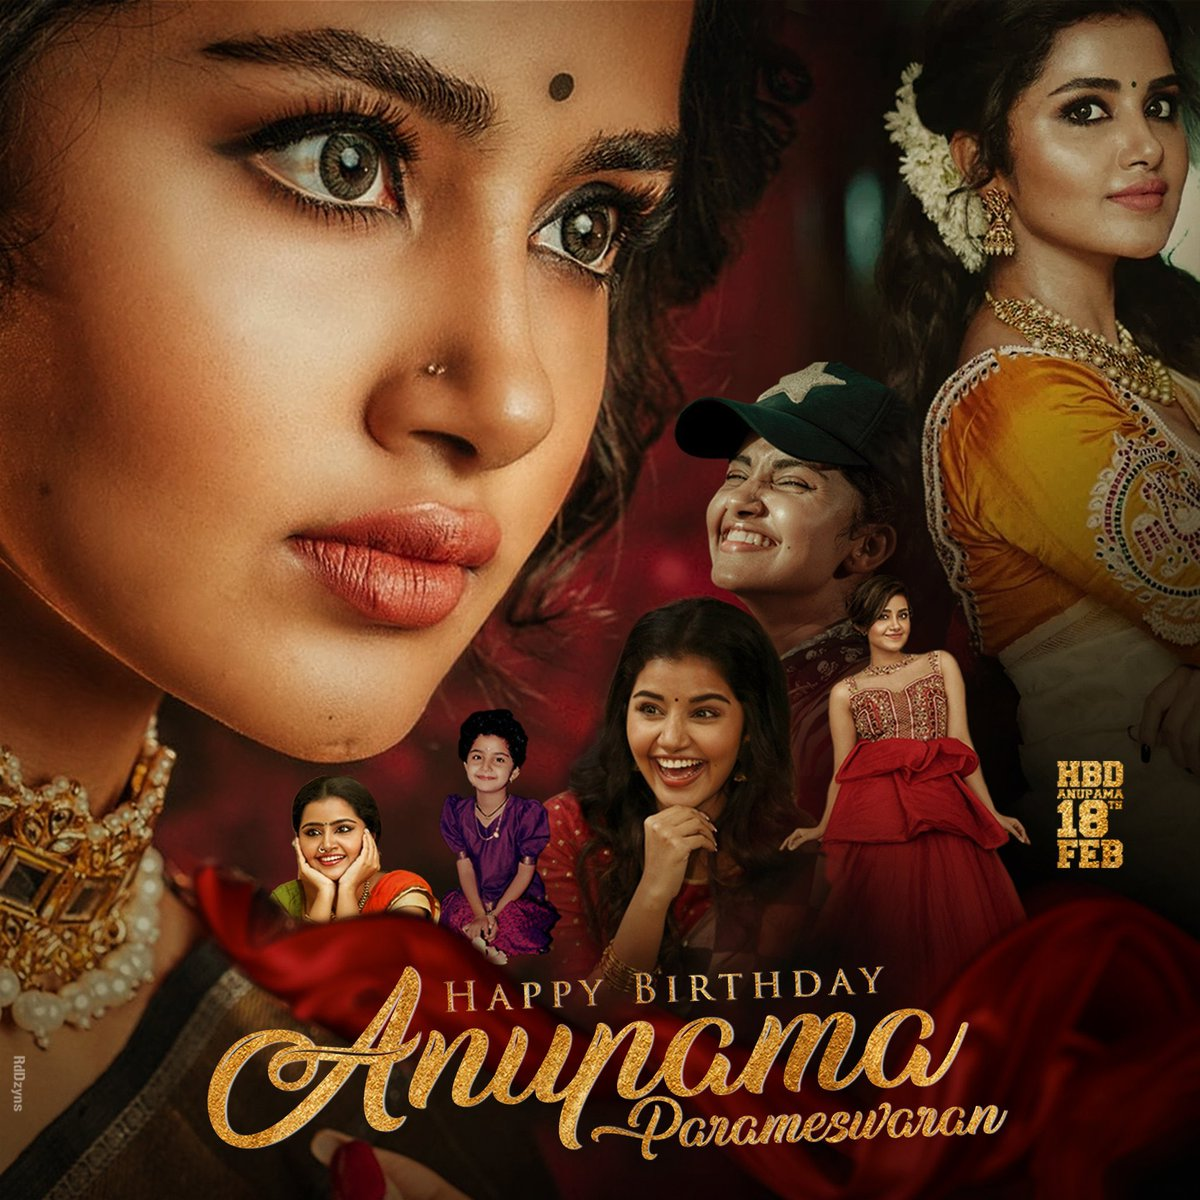 Wishing you a Very happy birthday @anupamahere From @PuneethRajkumar Fans. I hope you Have a great year ahead All the best your Future projects @anupamahere Mam 👍  #HappyBirthdayAnupama #AnupamaParameswaran #PuneethRajkumar  #Yuvarathnaa